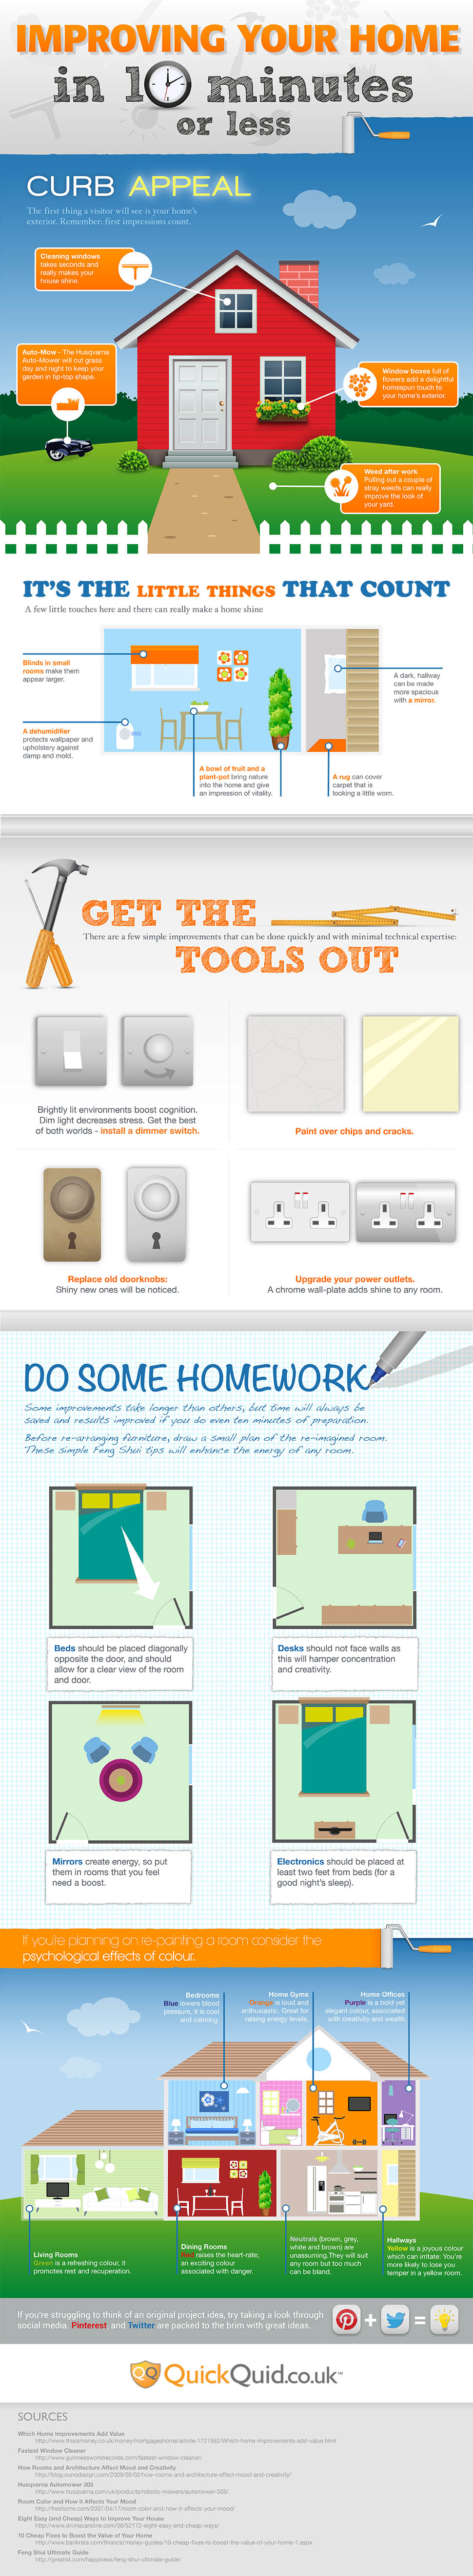 Home Improvement in 10 Minutes (Infographic)